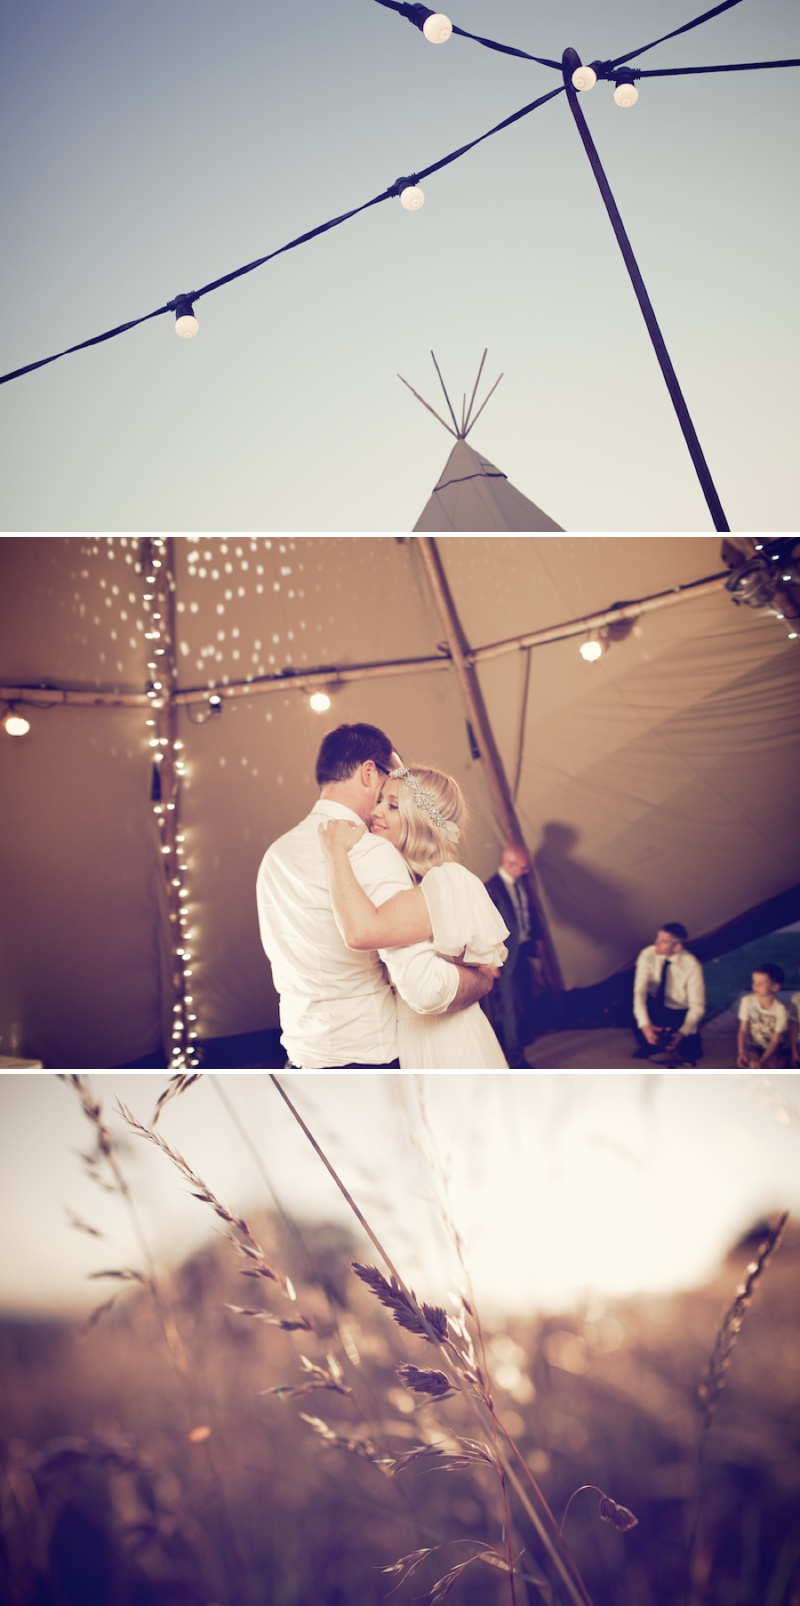 An Ethereal Bohemian Inspired Wedding At Standlow Farm With Tipis From Papakata A David Fielden Dress And Juliet Cap Veil With A Sweet Avalanche Rose Bouquet 16 Silver Words.